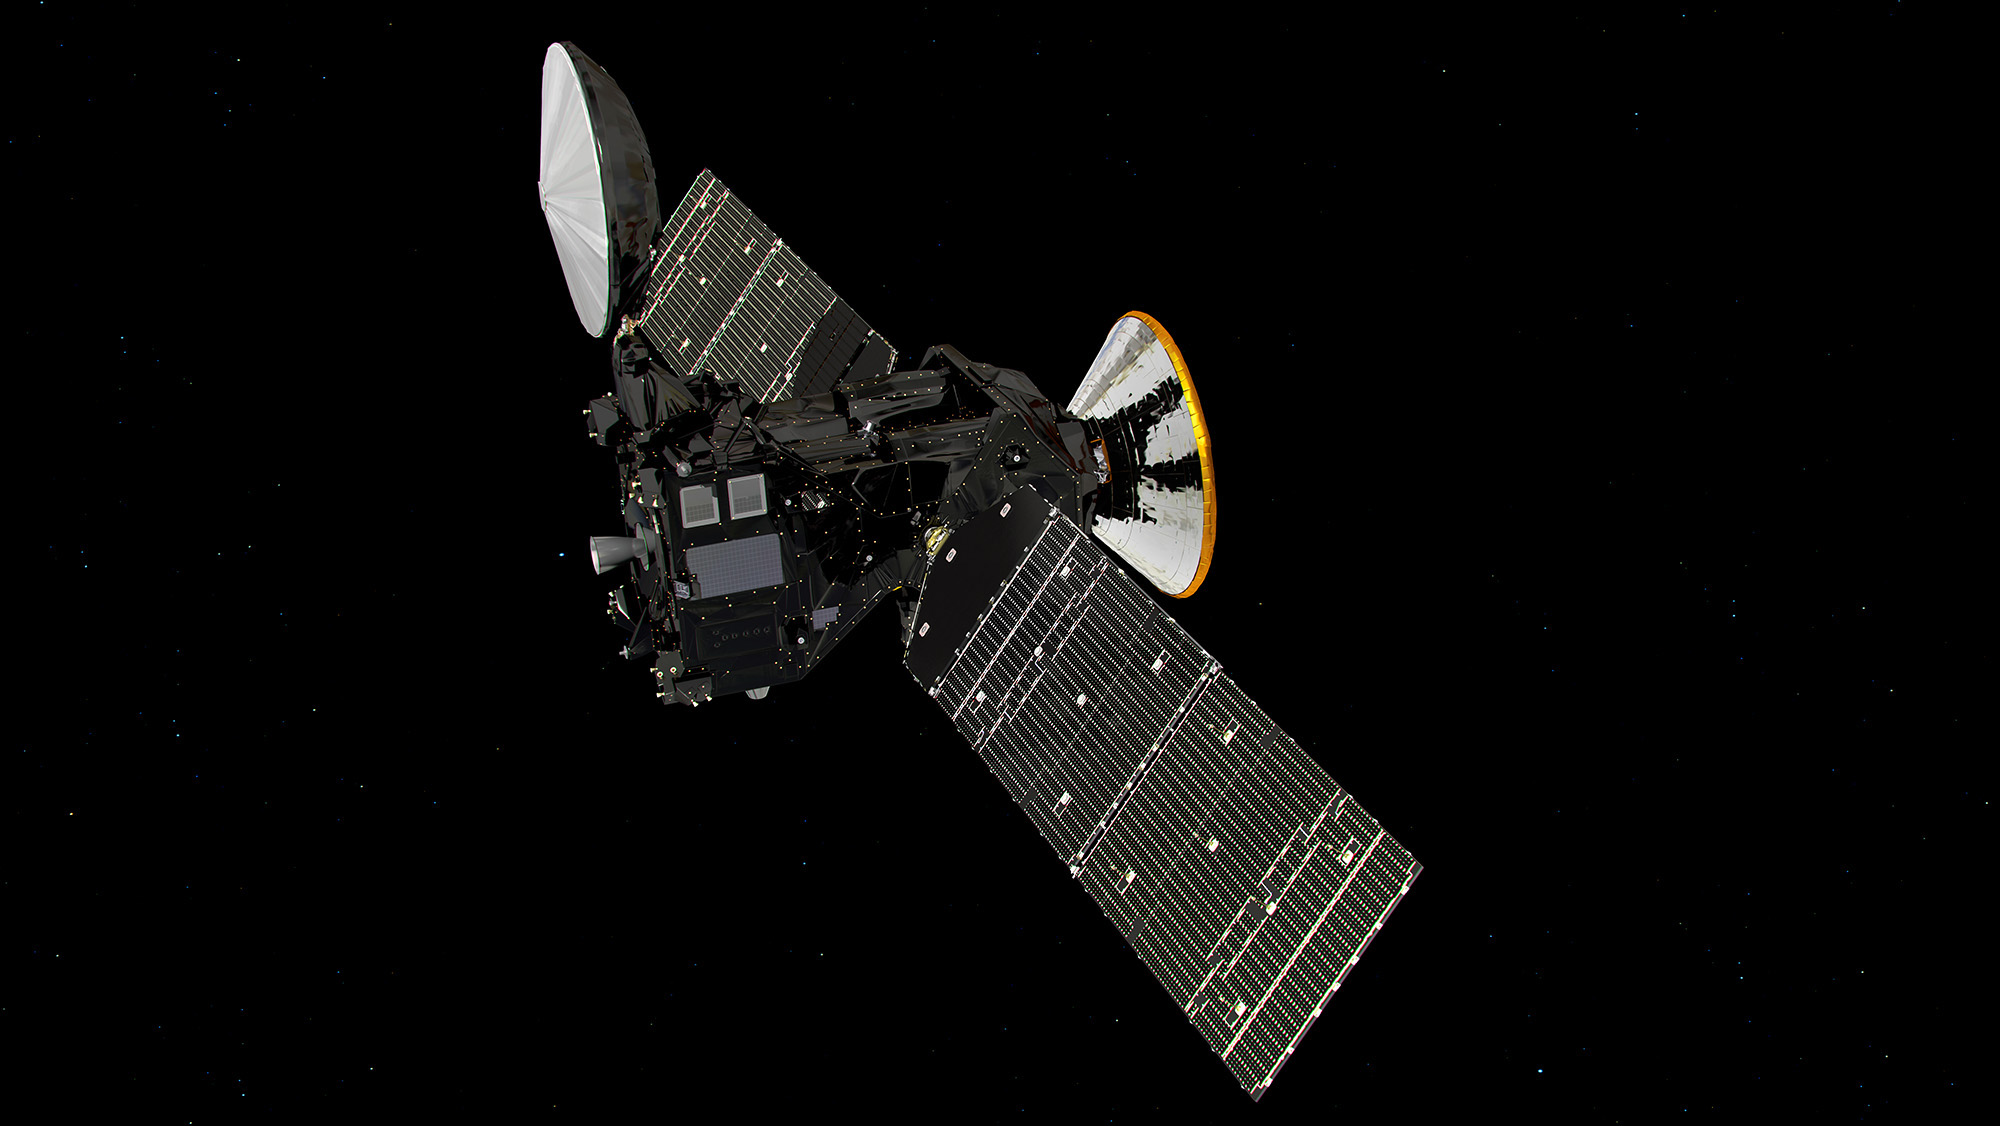 ExoMars in Deep Space